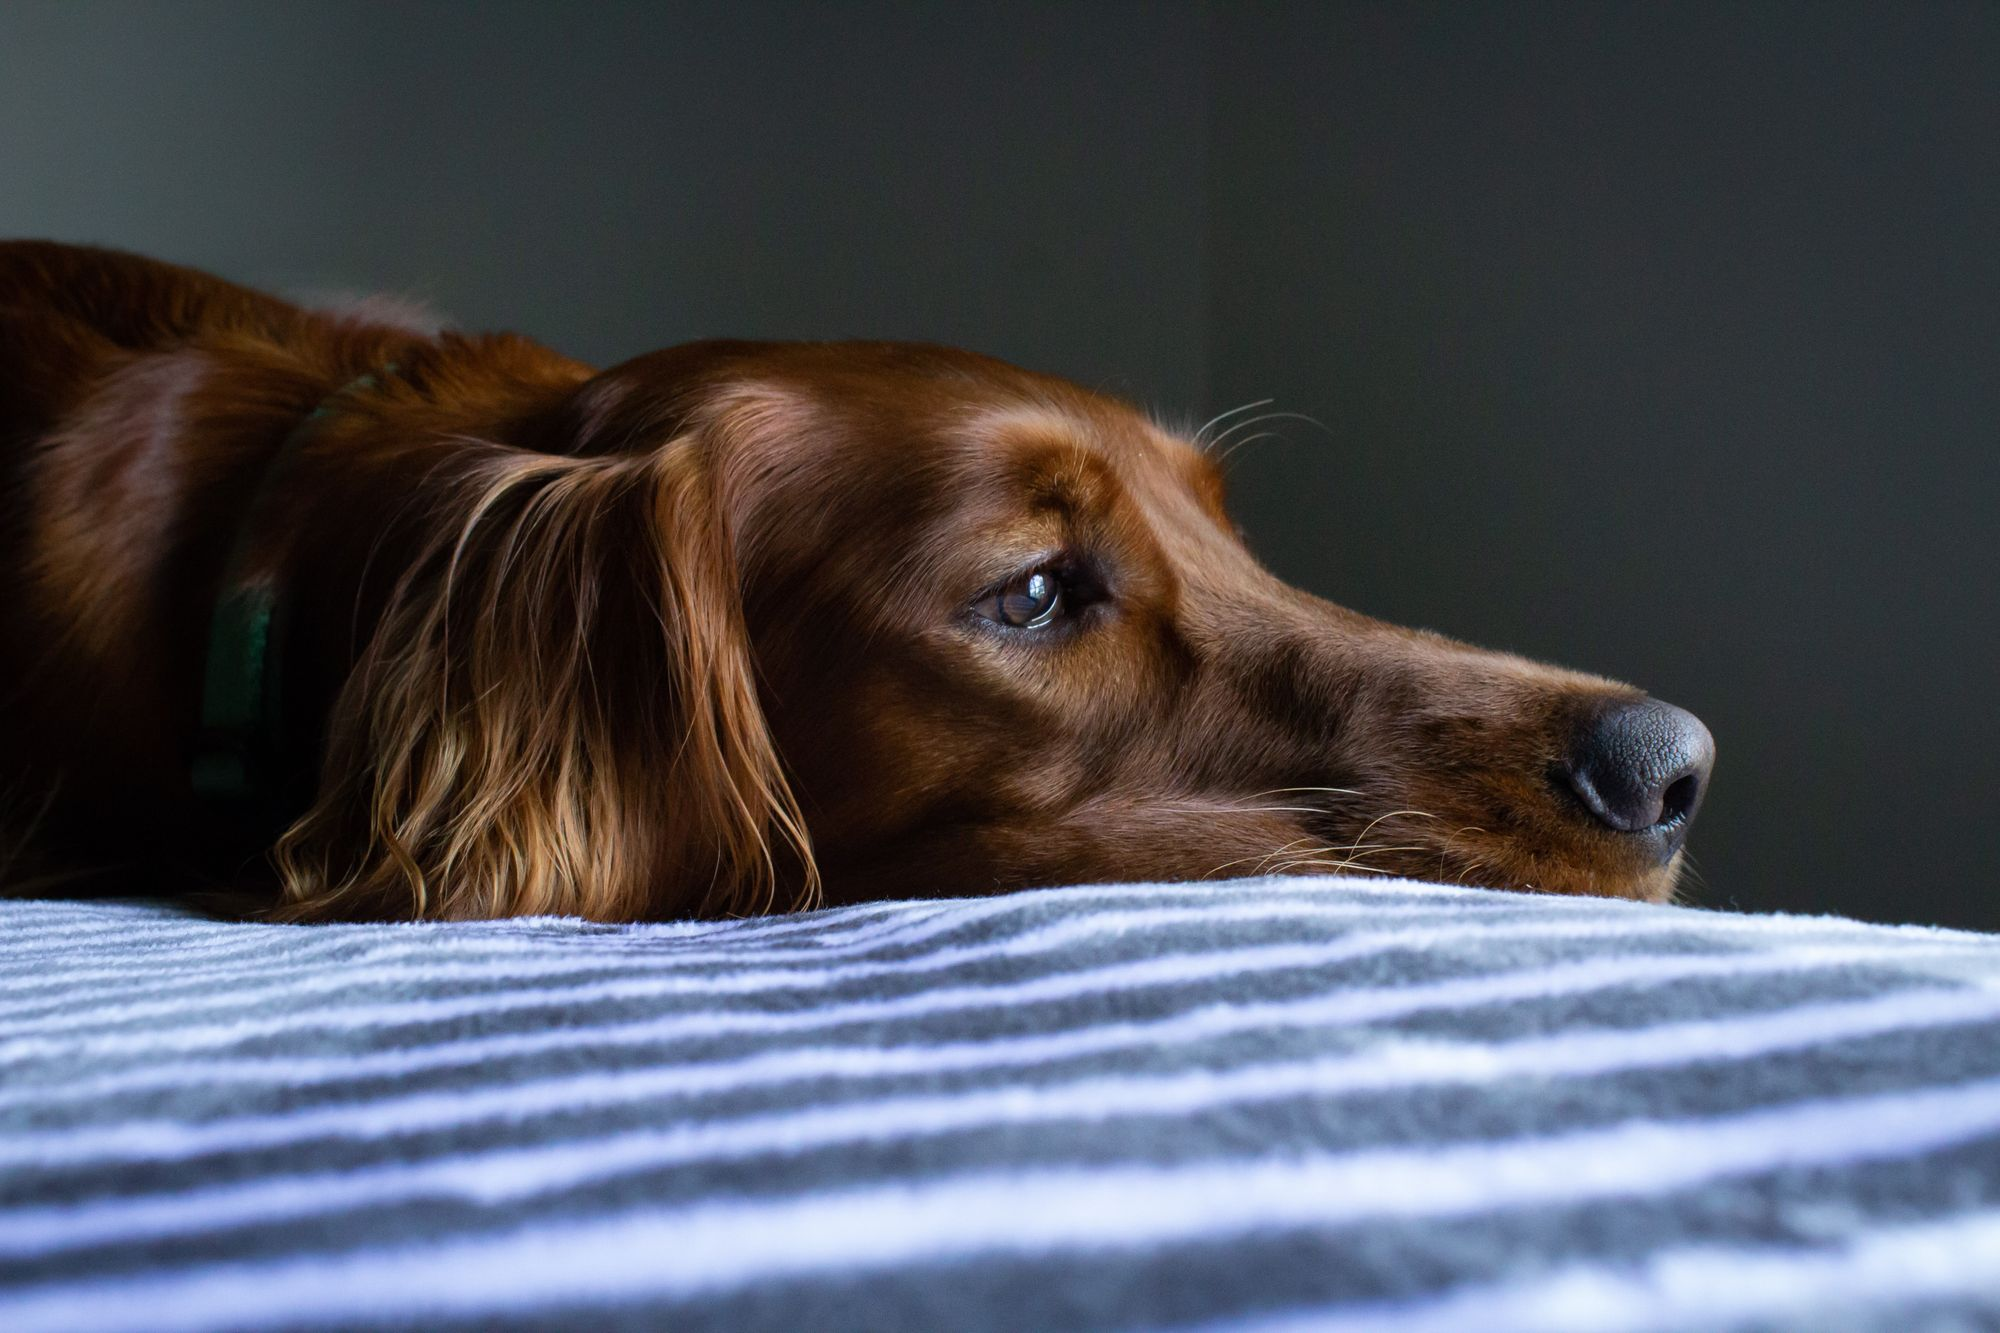 A sad-looking dog lies on a bed looking out the window